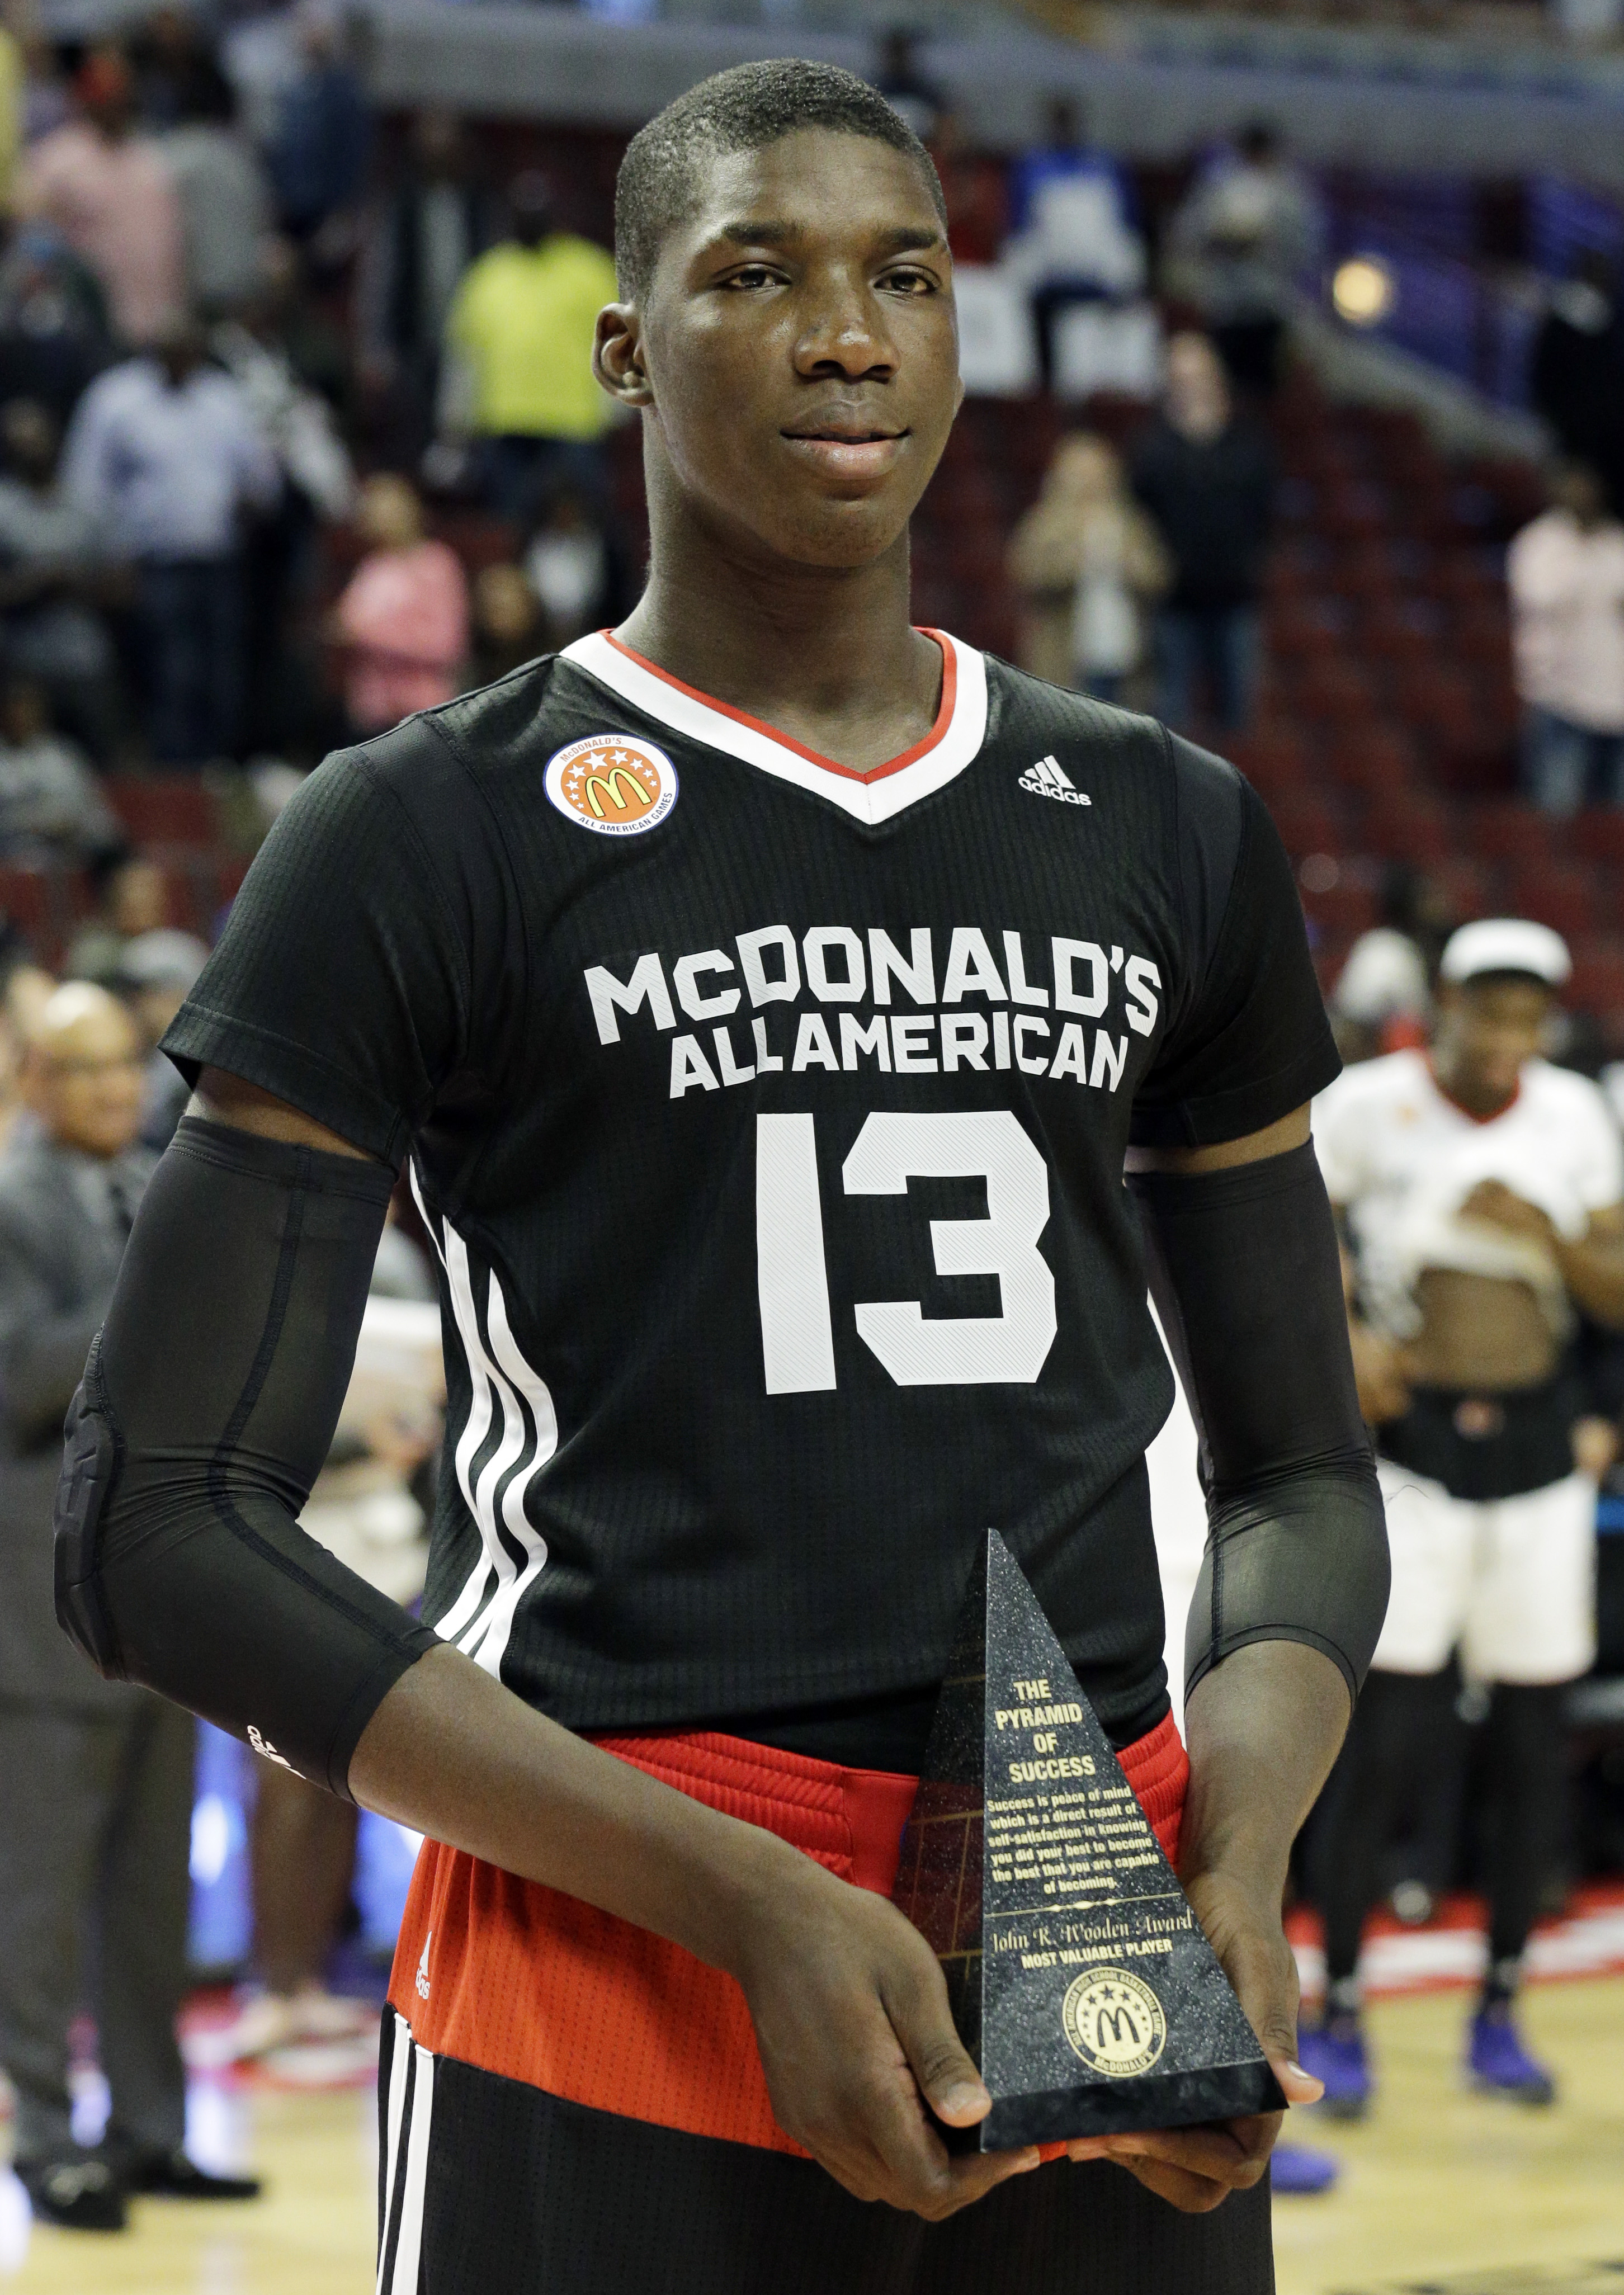 FILE - In this April 1, 2015, file photo, East forward Cheick Diallo of Our Savior New American in Centereach, N.Y., holds the MVP trophy after East defeated West 111-91 in the McDonald's All-American boys basketball game in Chicago. Kansas officials have